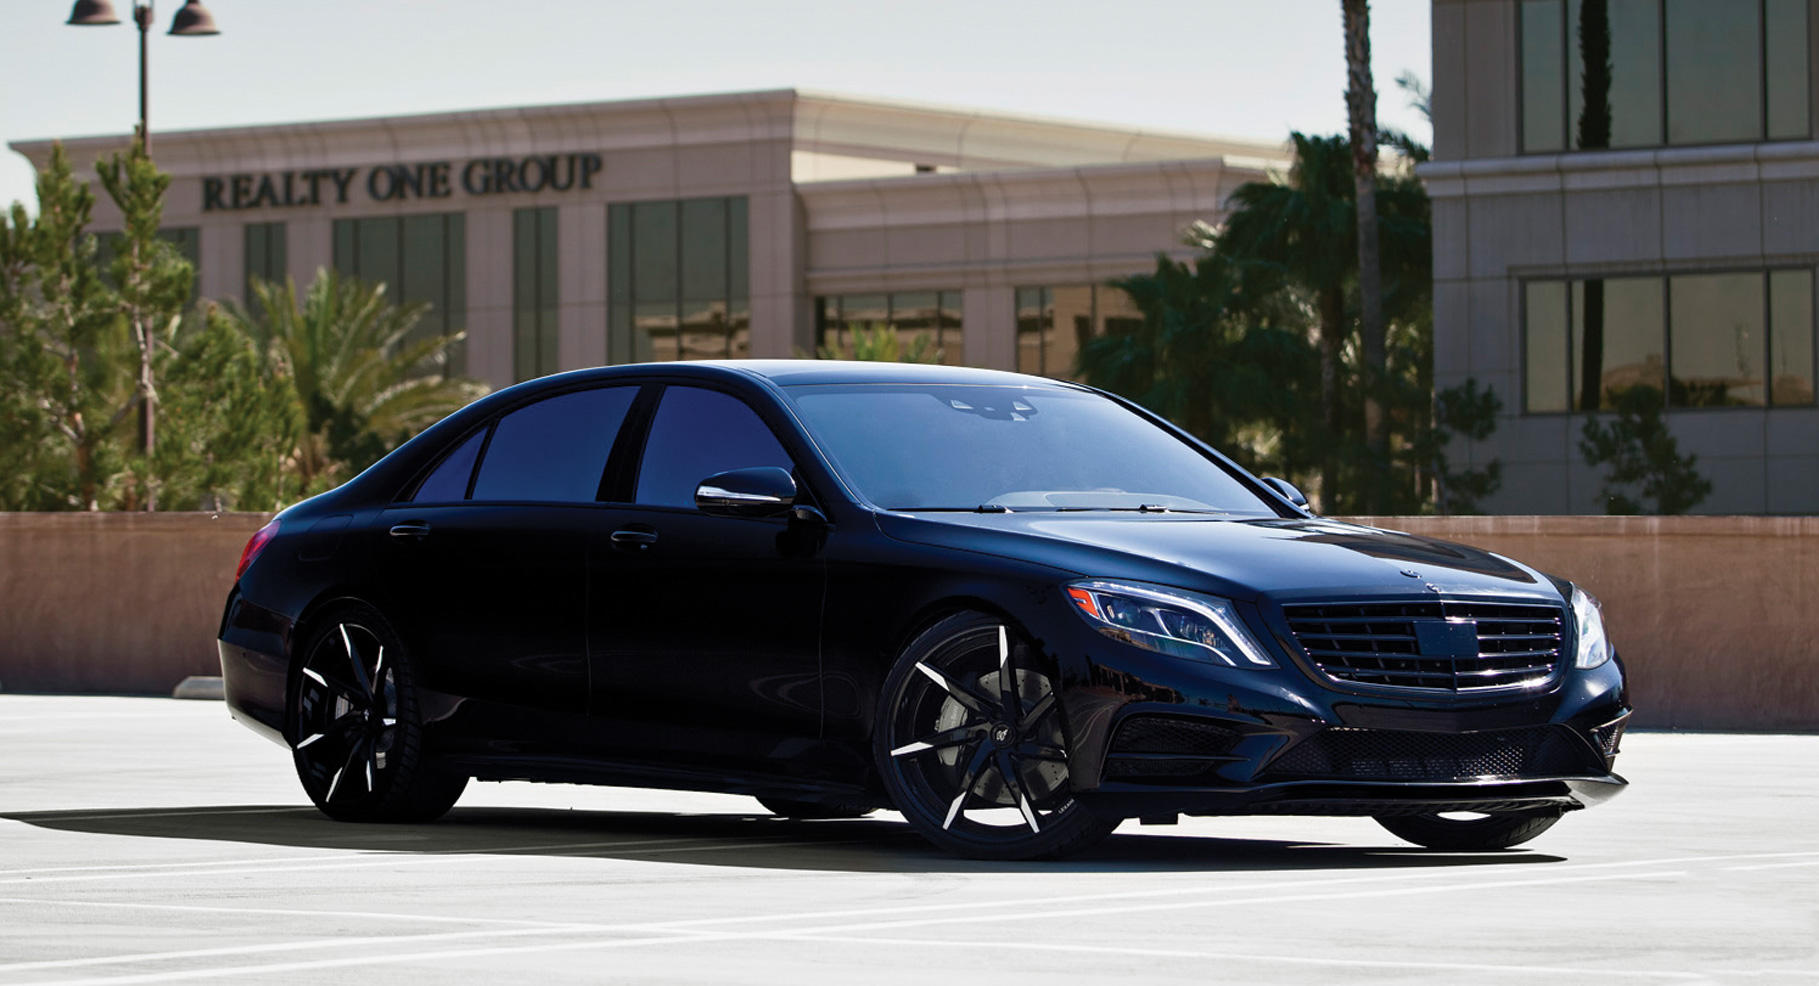 All Black With Brushed Tips, On The 2014 Mercedes S550.